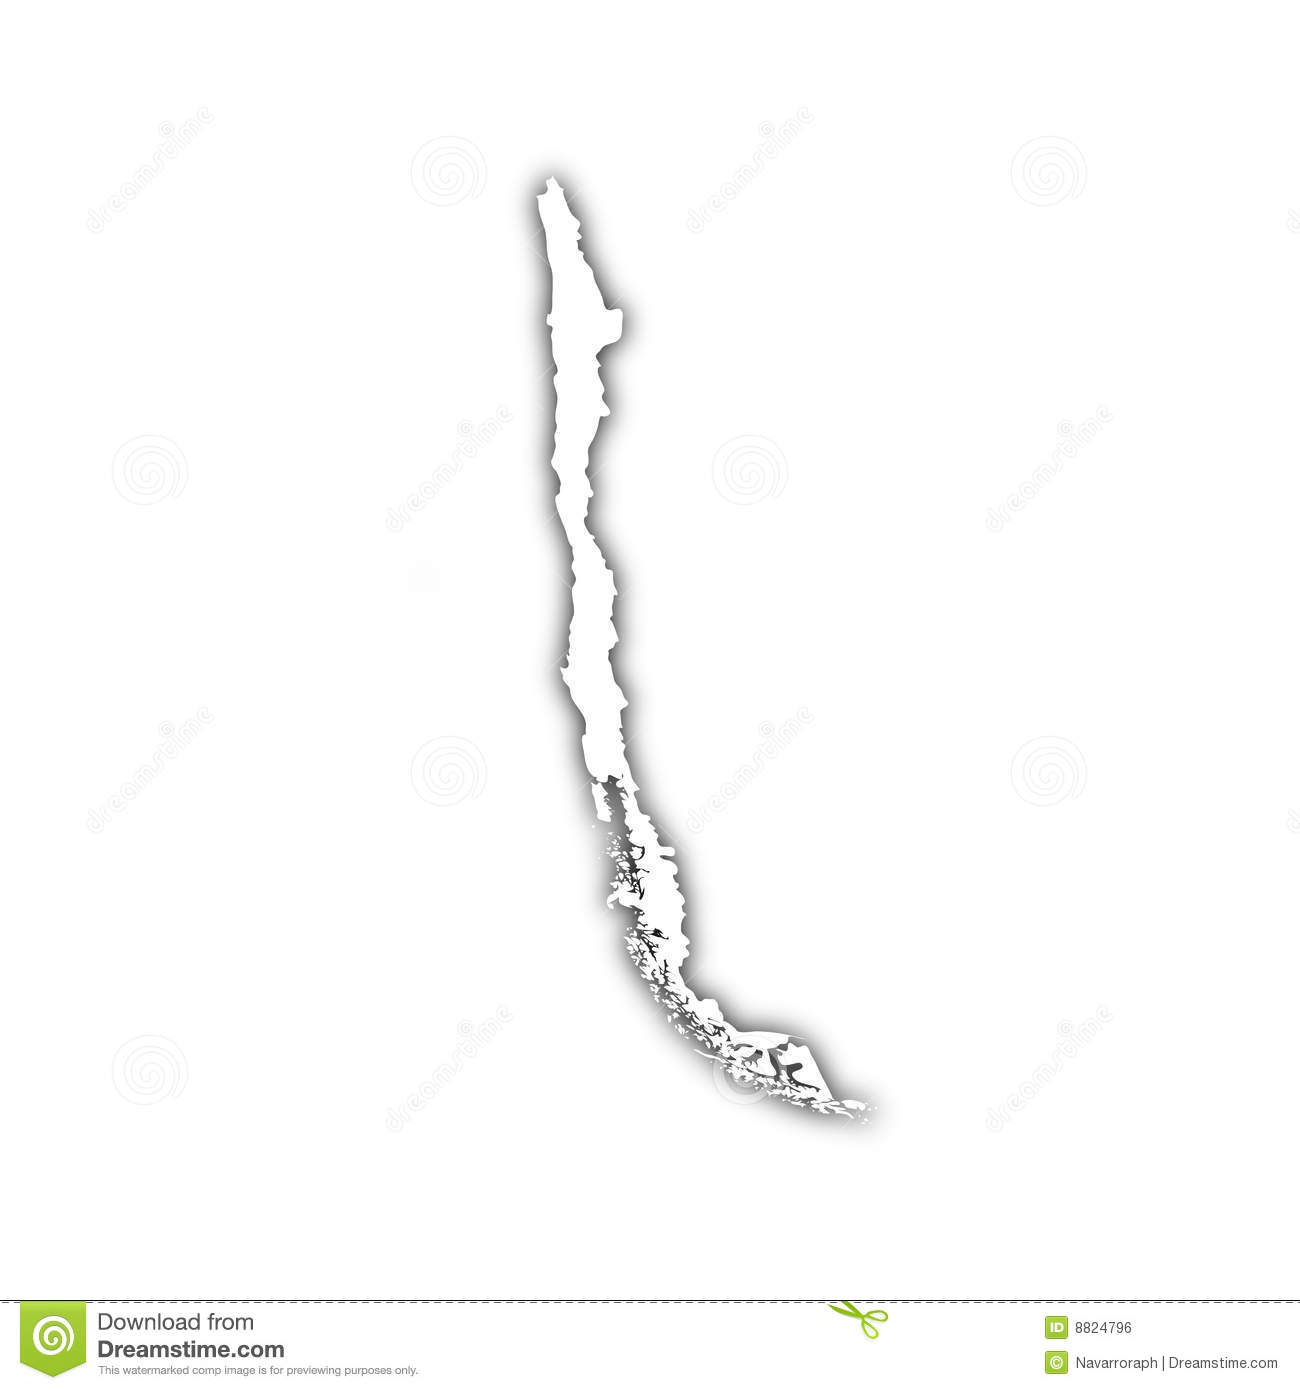 Map Of Chile With Shadow Royalty Free Stock Image - Image: 8824796